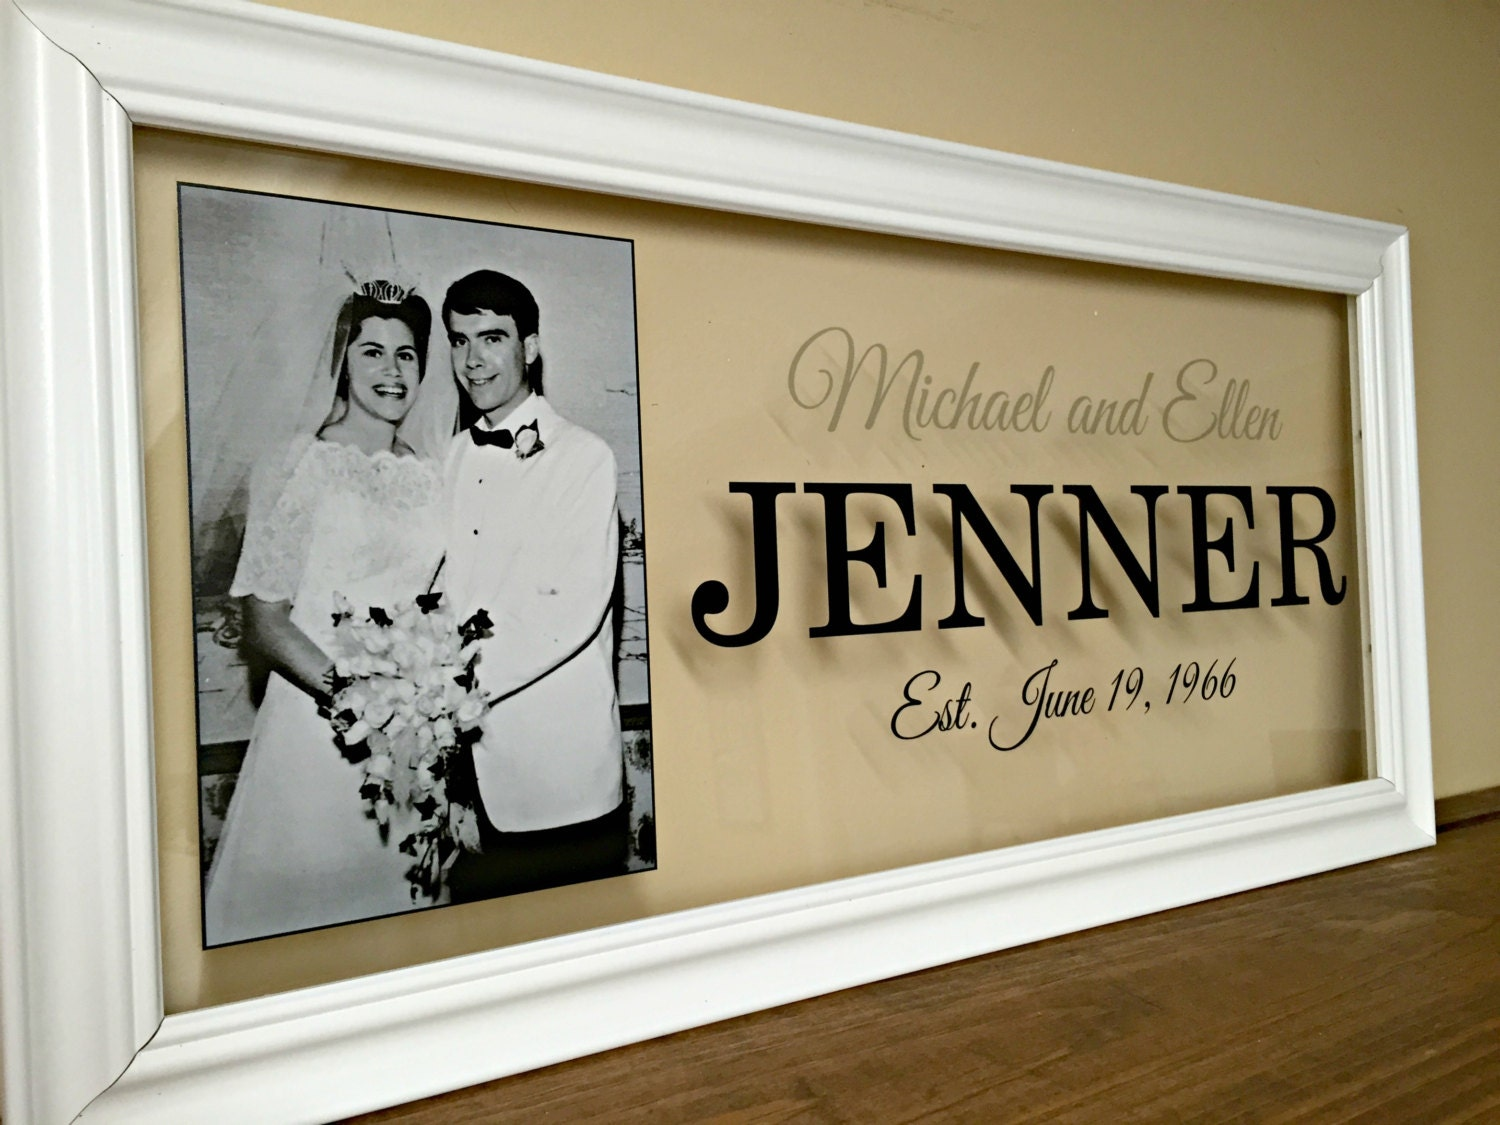 Gift Ideas For 50th Wedding Anniversary Party: 50th Anniversary Gifts For Parents 50th Anniversary Gifts